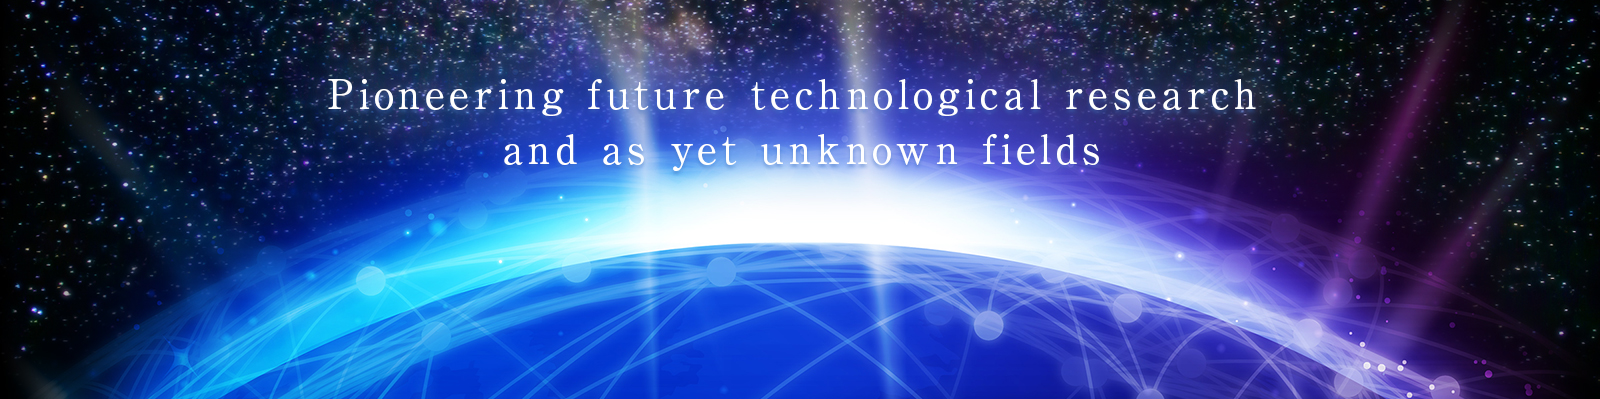 Pioneering future technological research and as yet unknown fields